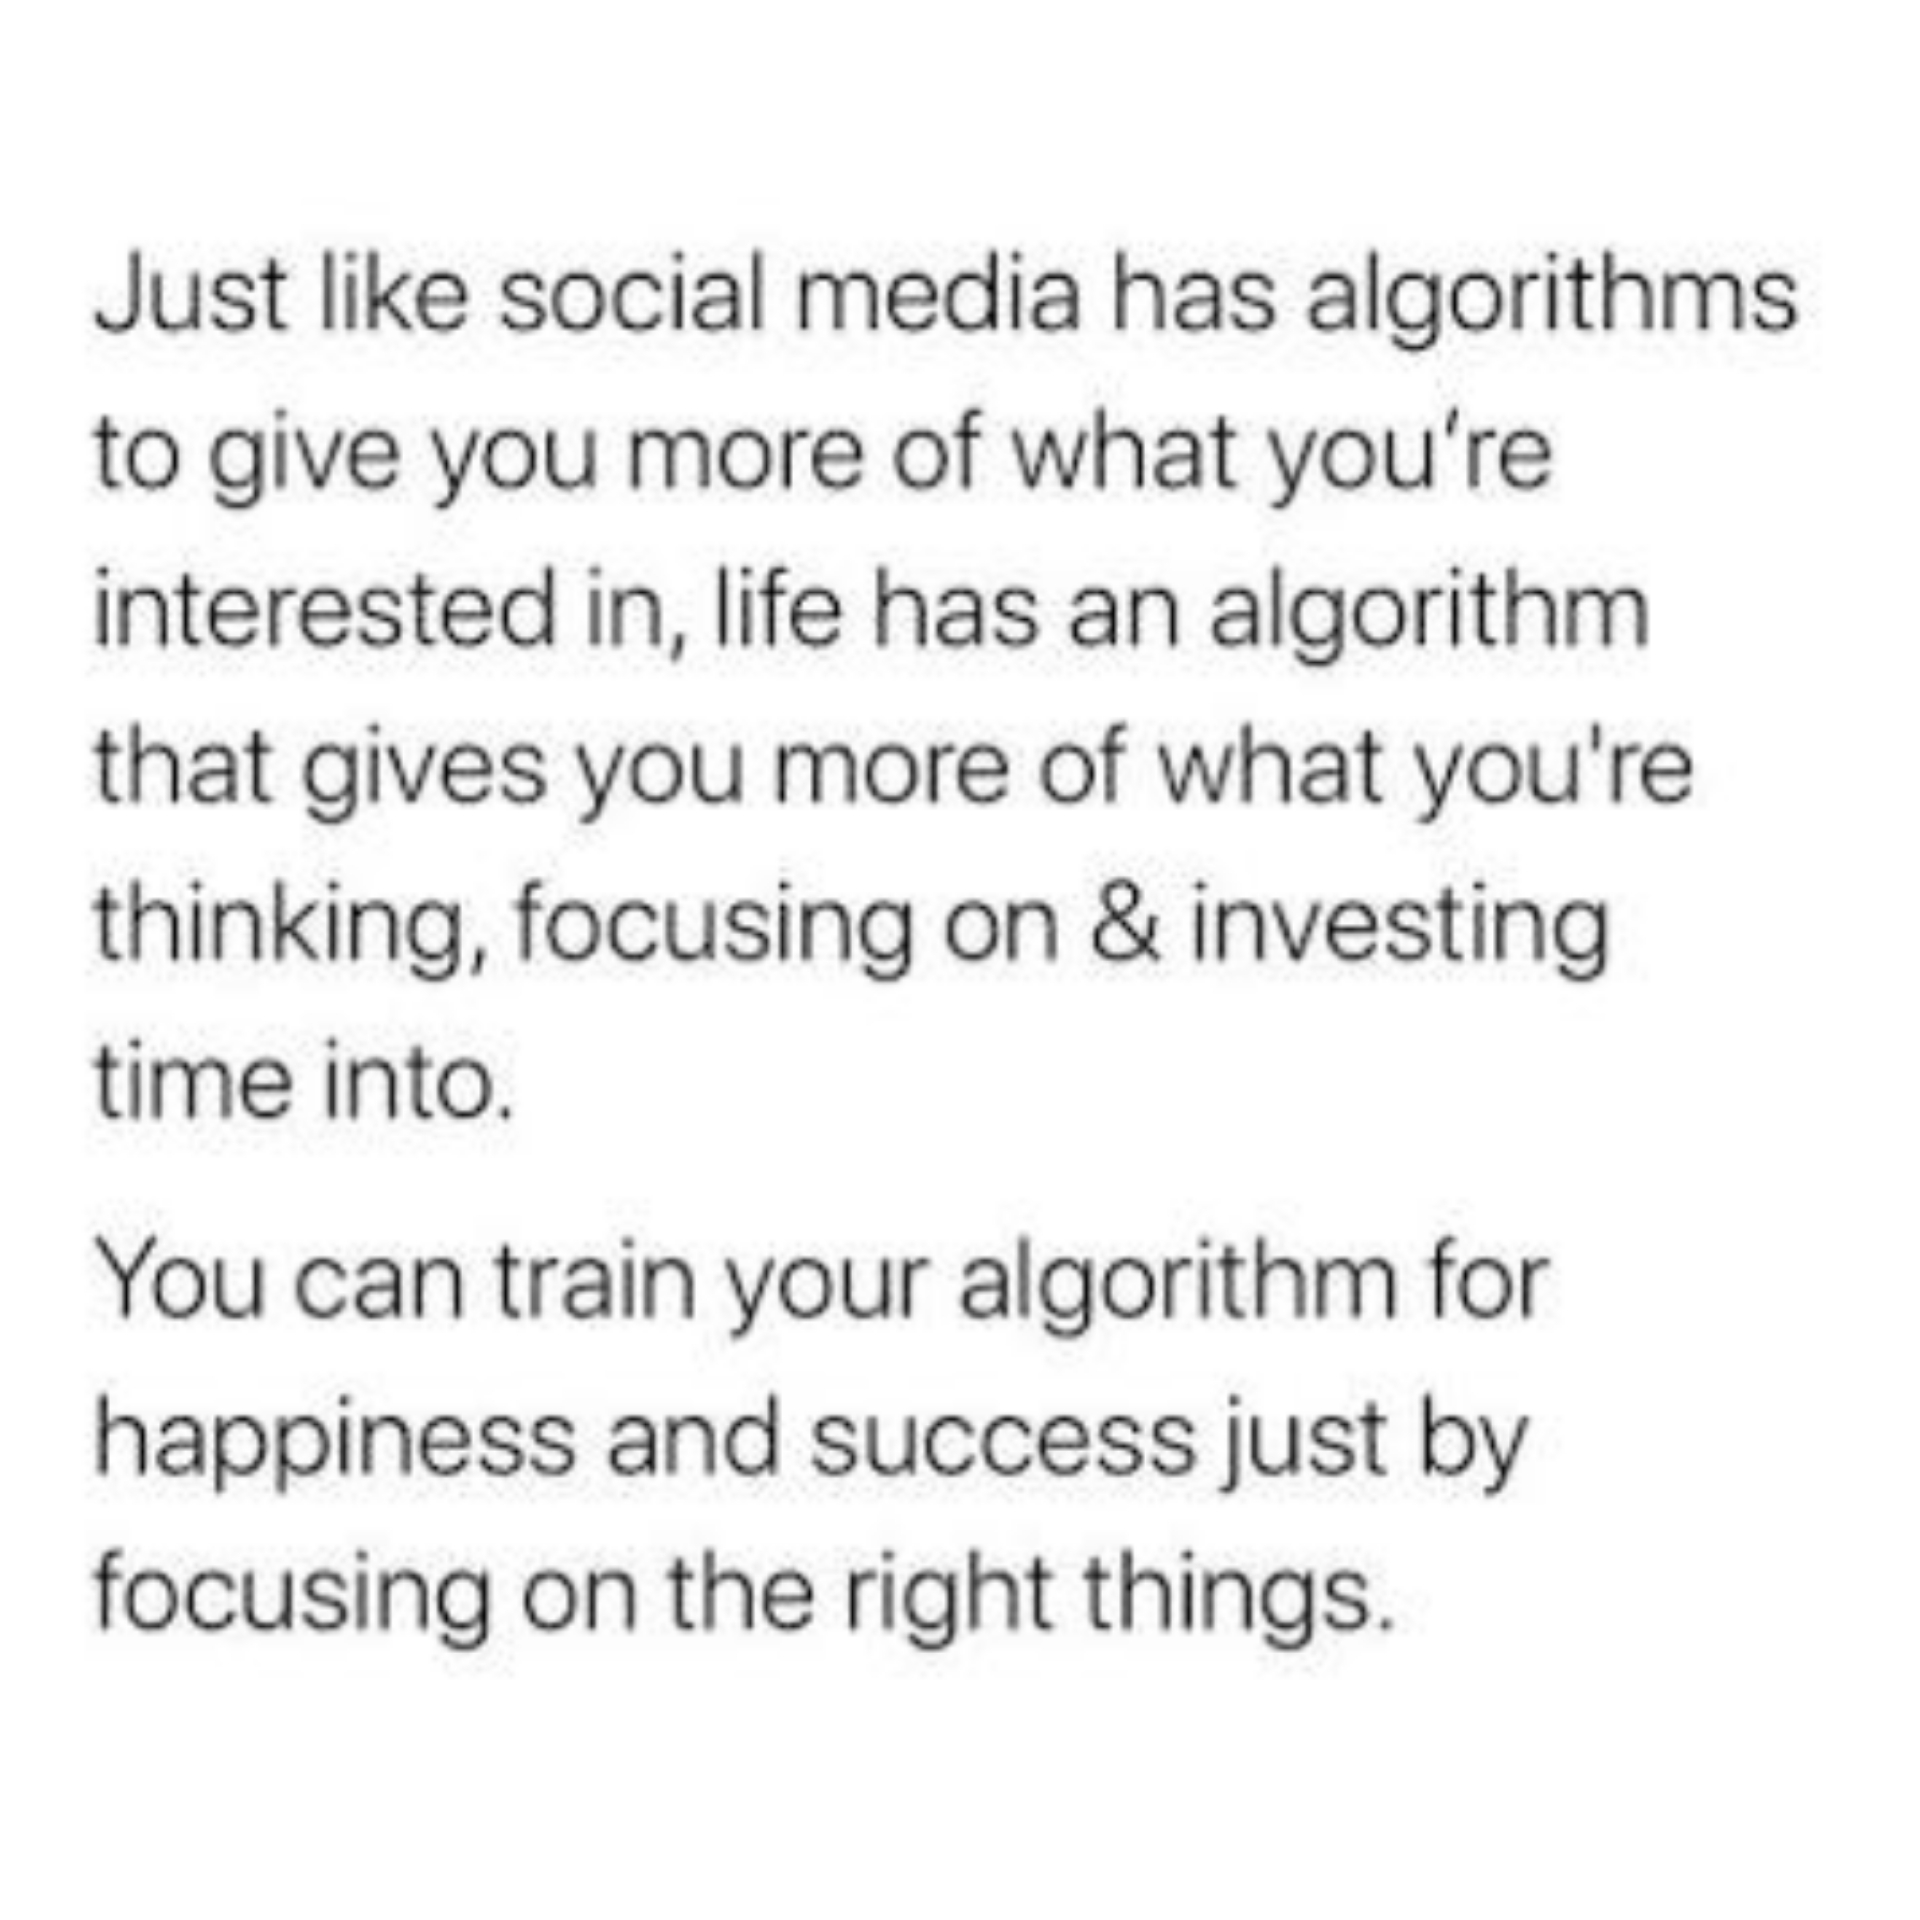 [Image] Your algorithm